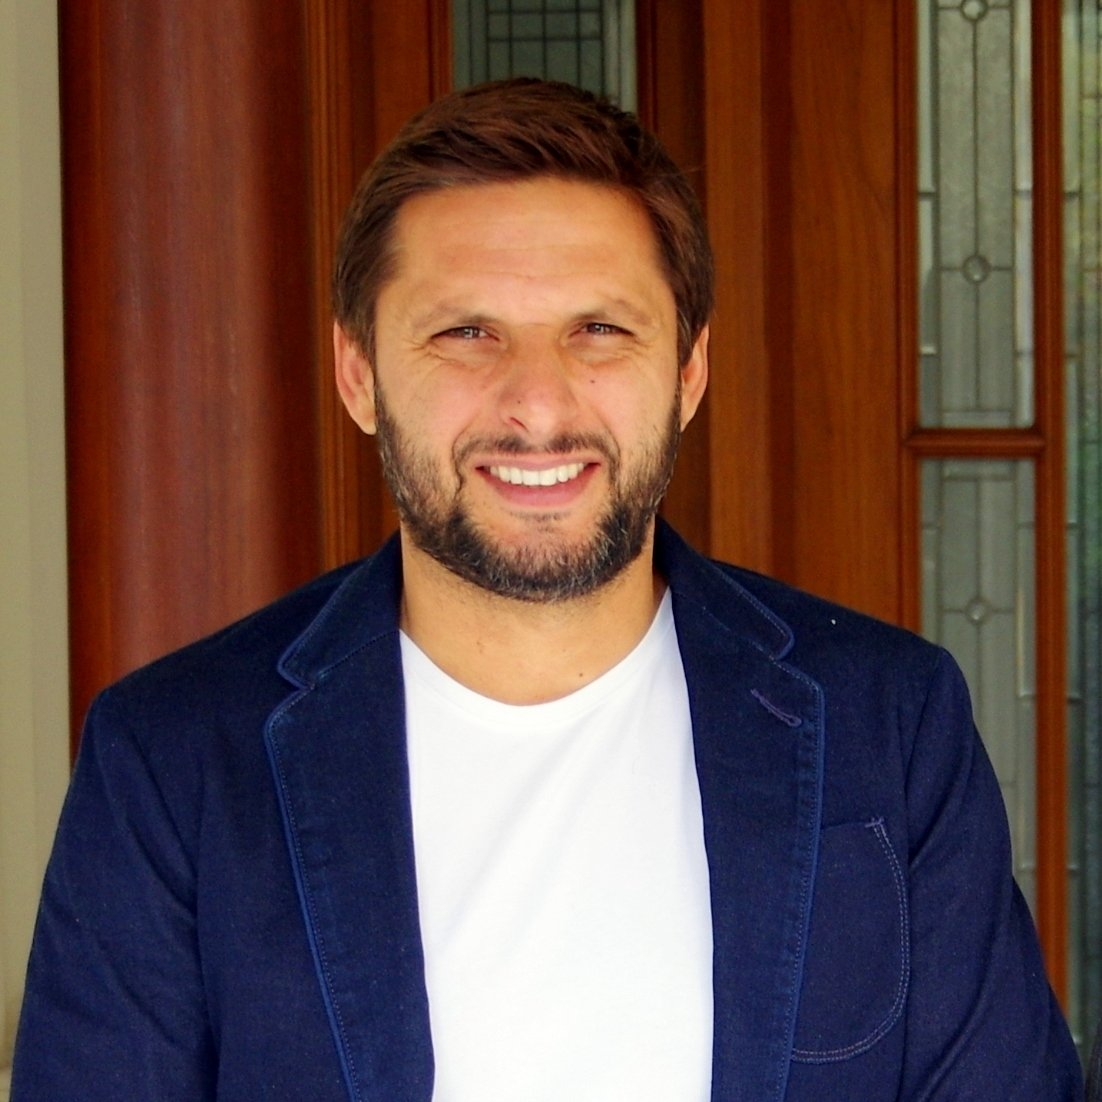 shahid afridi pledges support for differently abled athlete